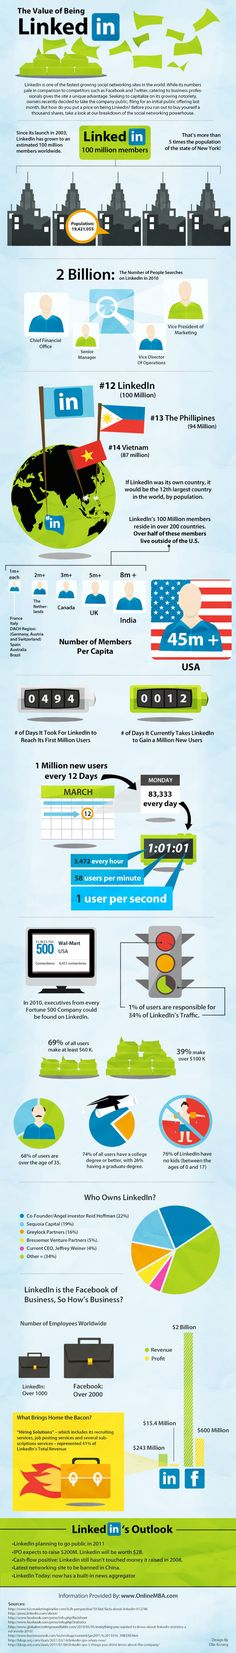 Infographic from LinkedIn